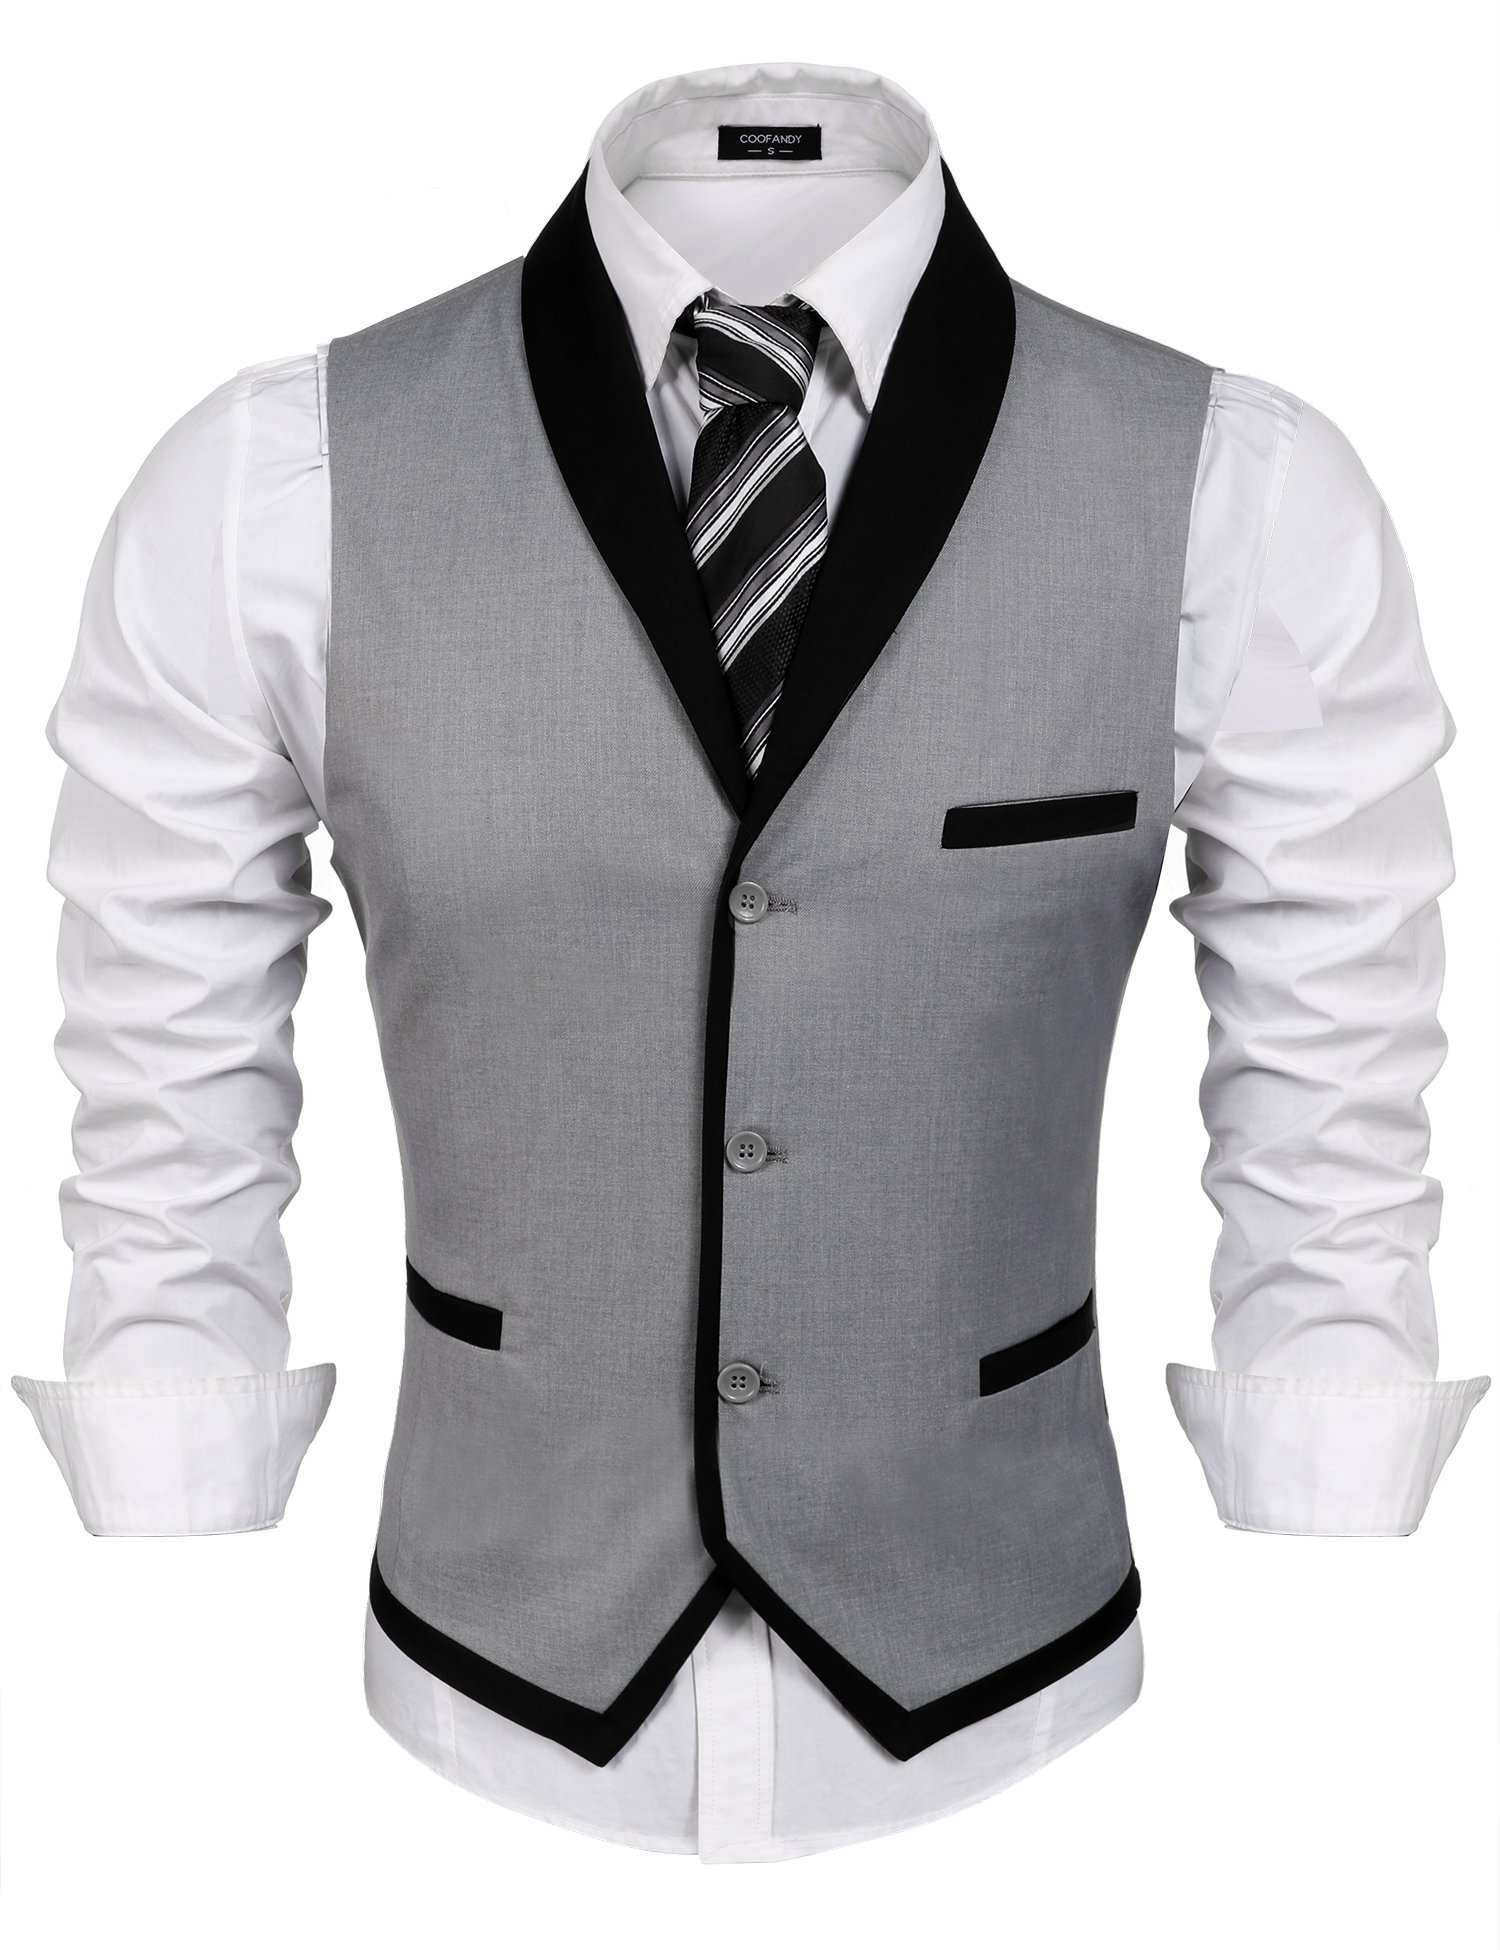 COOFANDY Men's V-Neck Sleeveless Slim Fit Vest,Jacket Business Suit Dress Vest,Grey,X-Large(Chest: 47.2'')